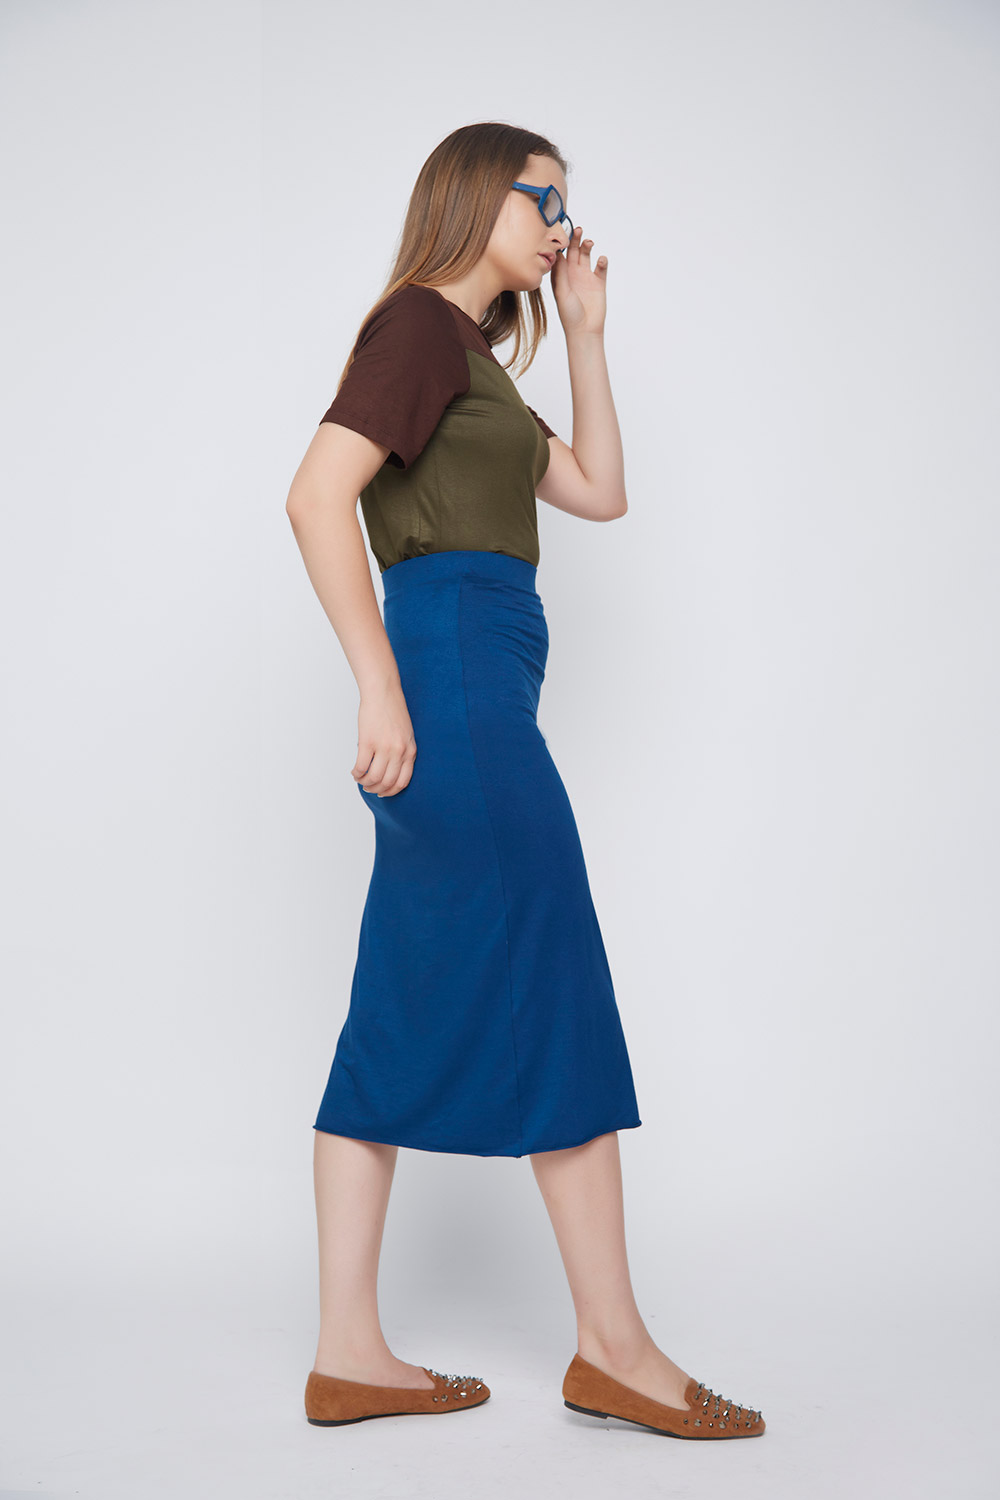 blue casual skirt - Main